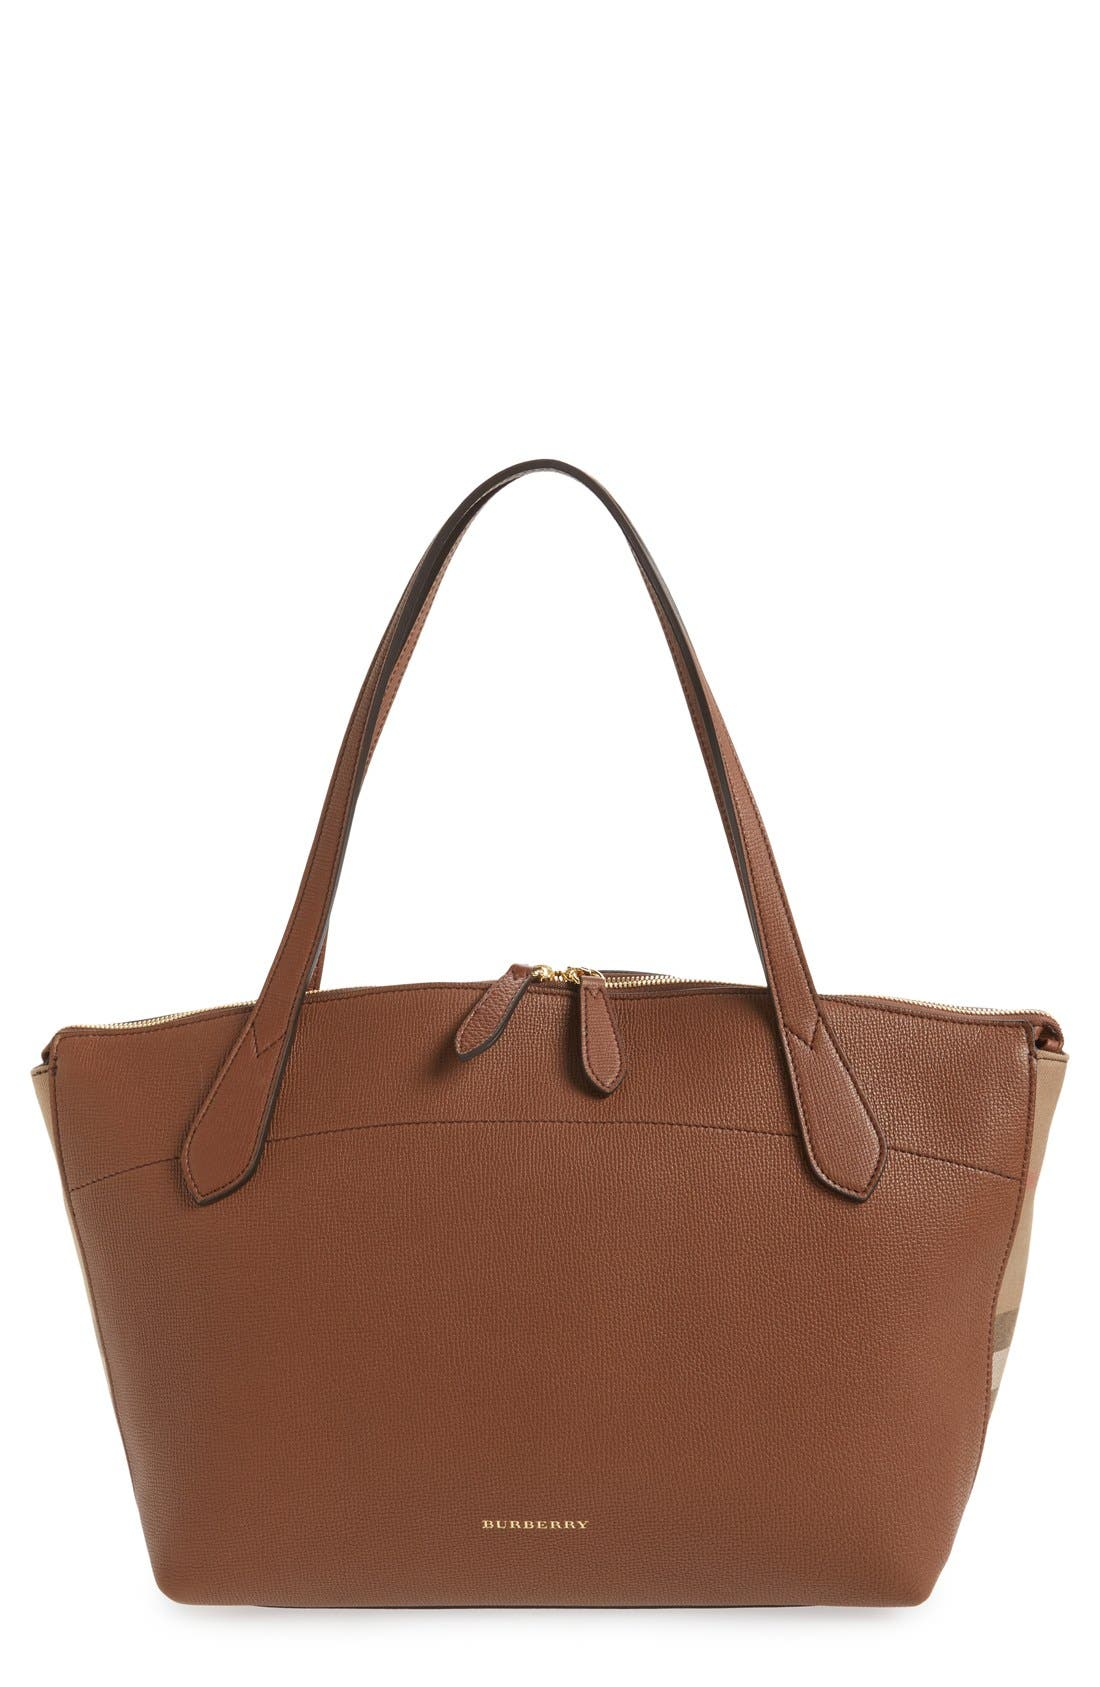 Welburn Check Leather Tote,                         Main,                         color, 200